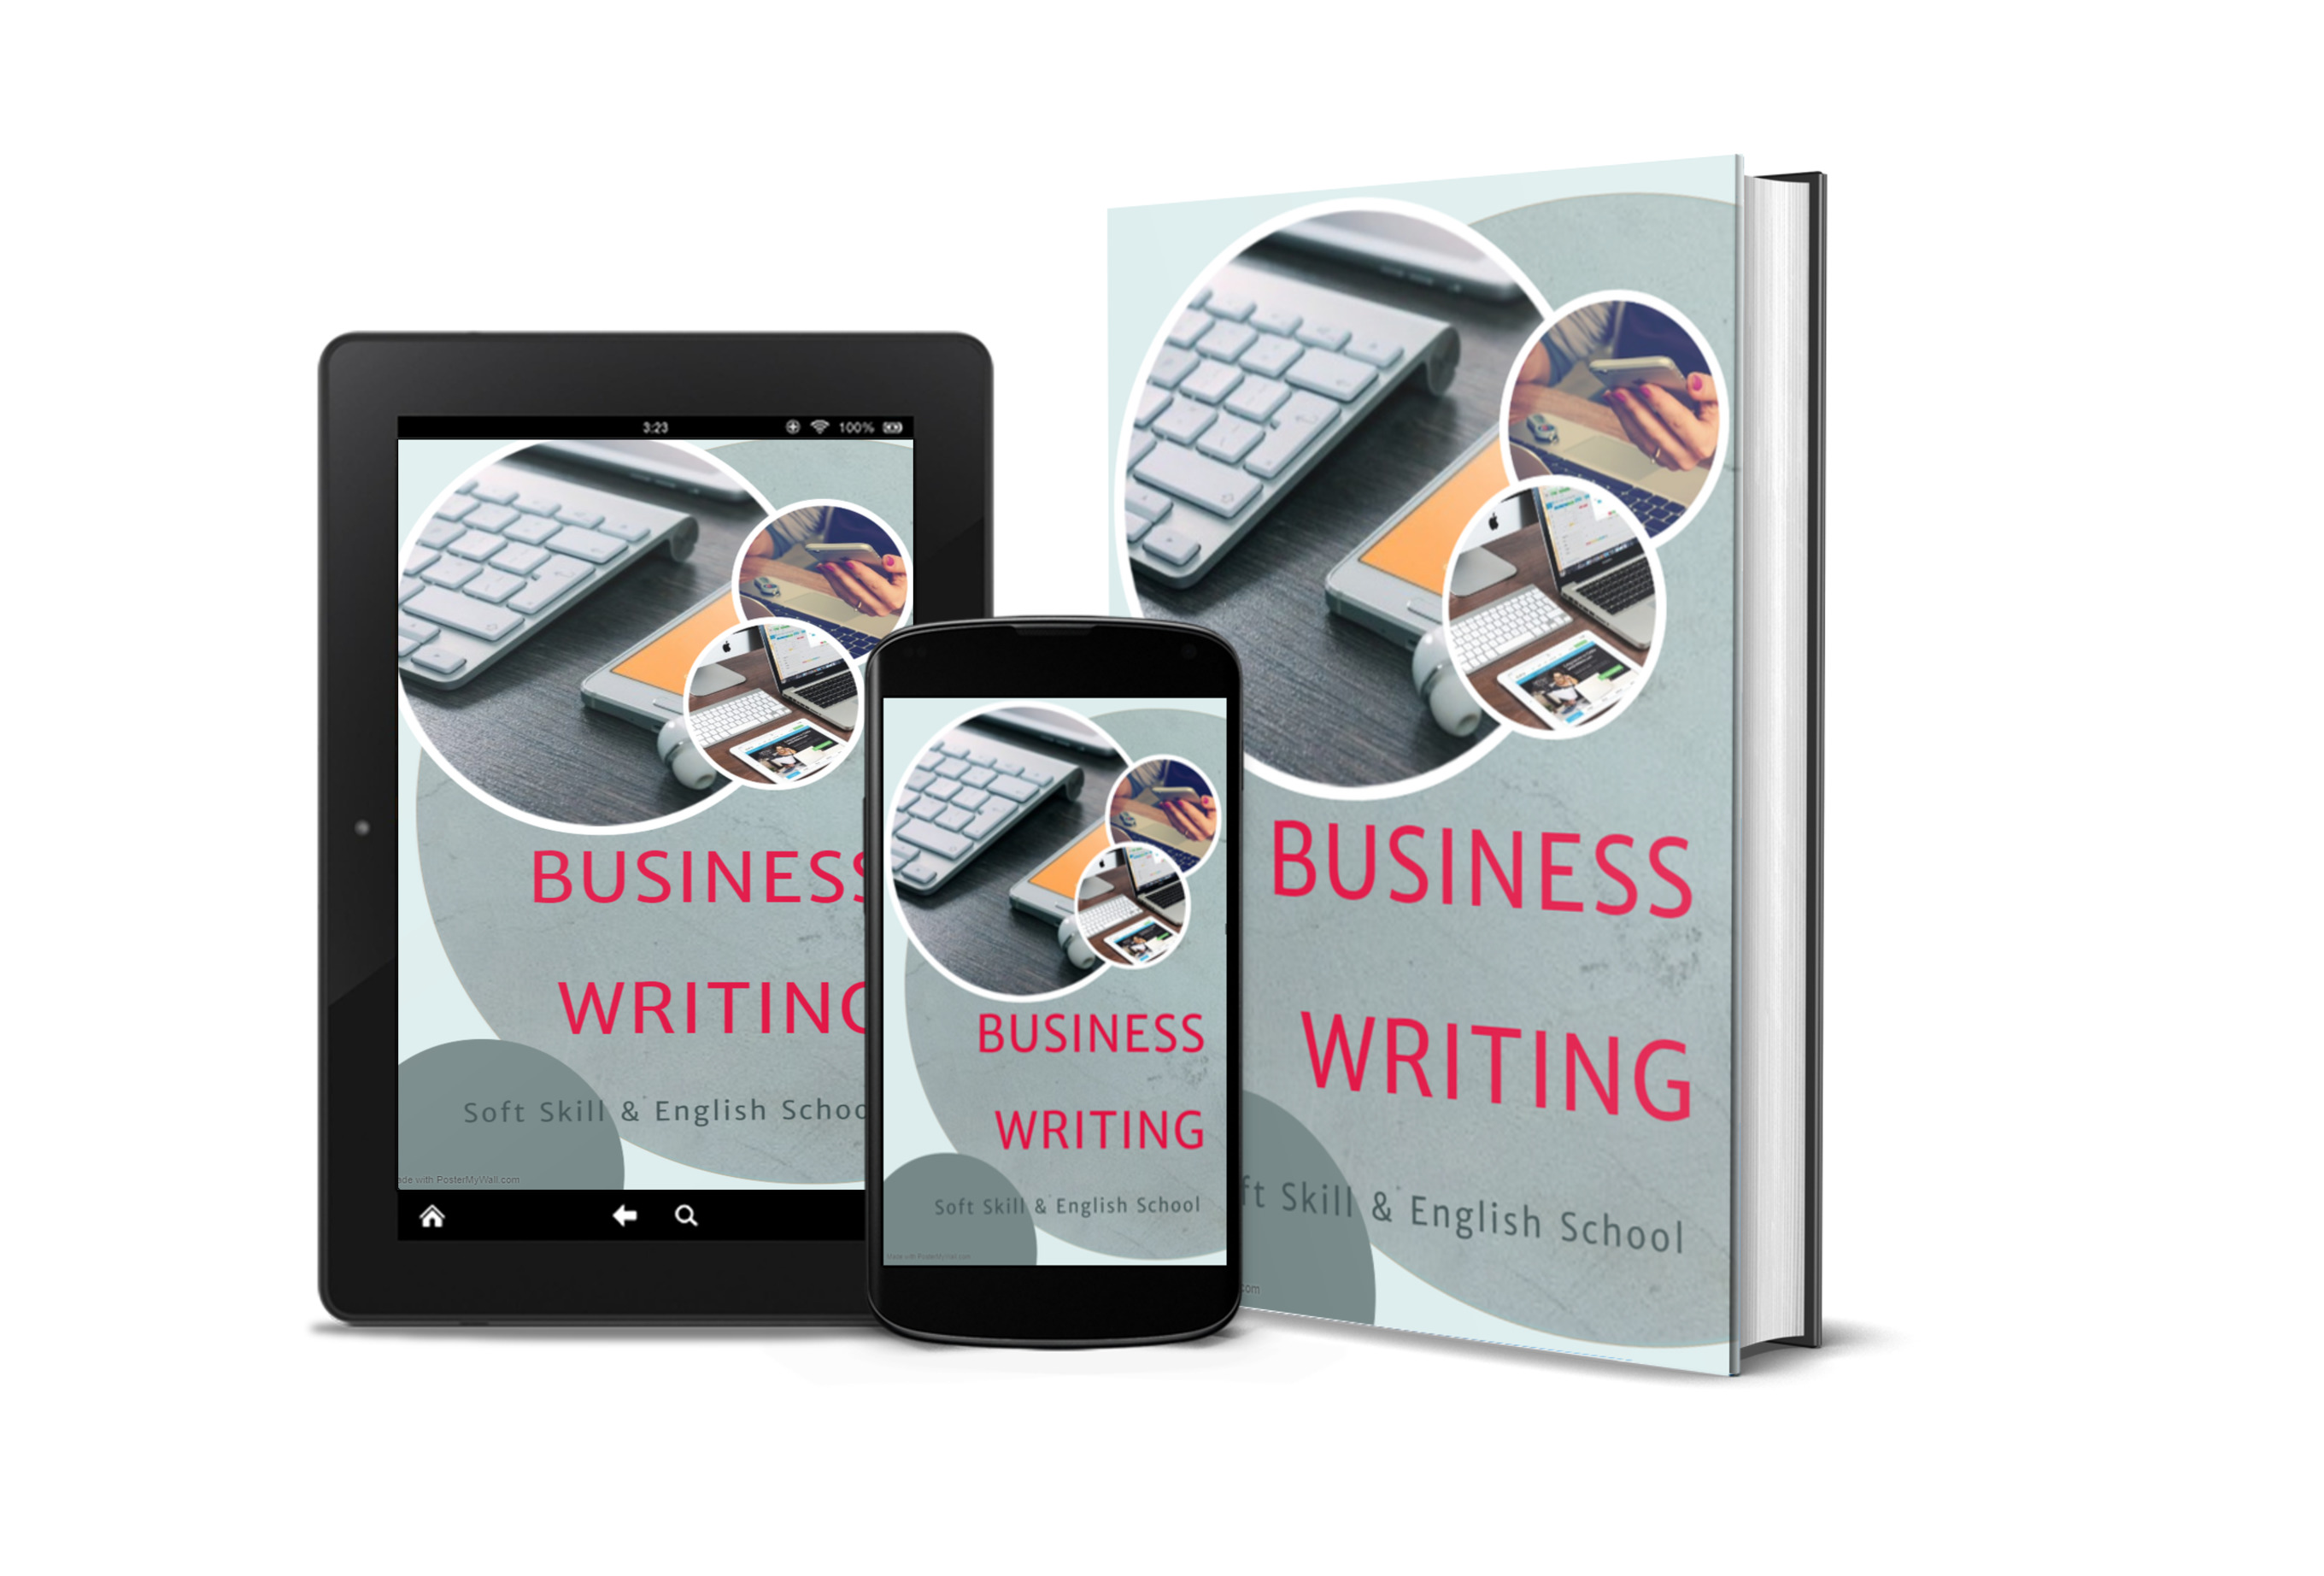 BOOK: BUSINESS WRITING